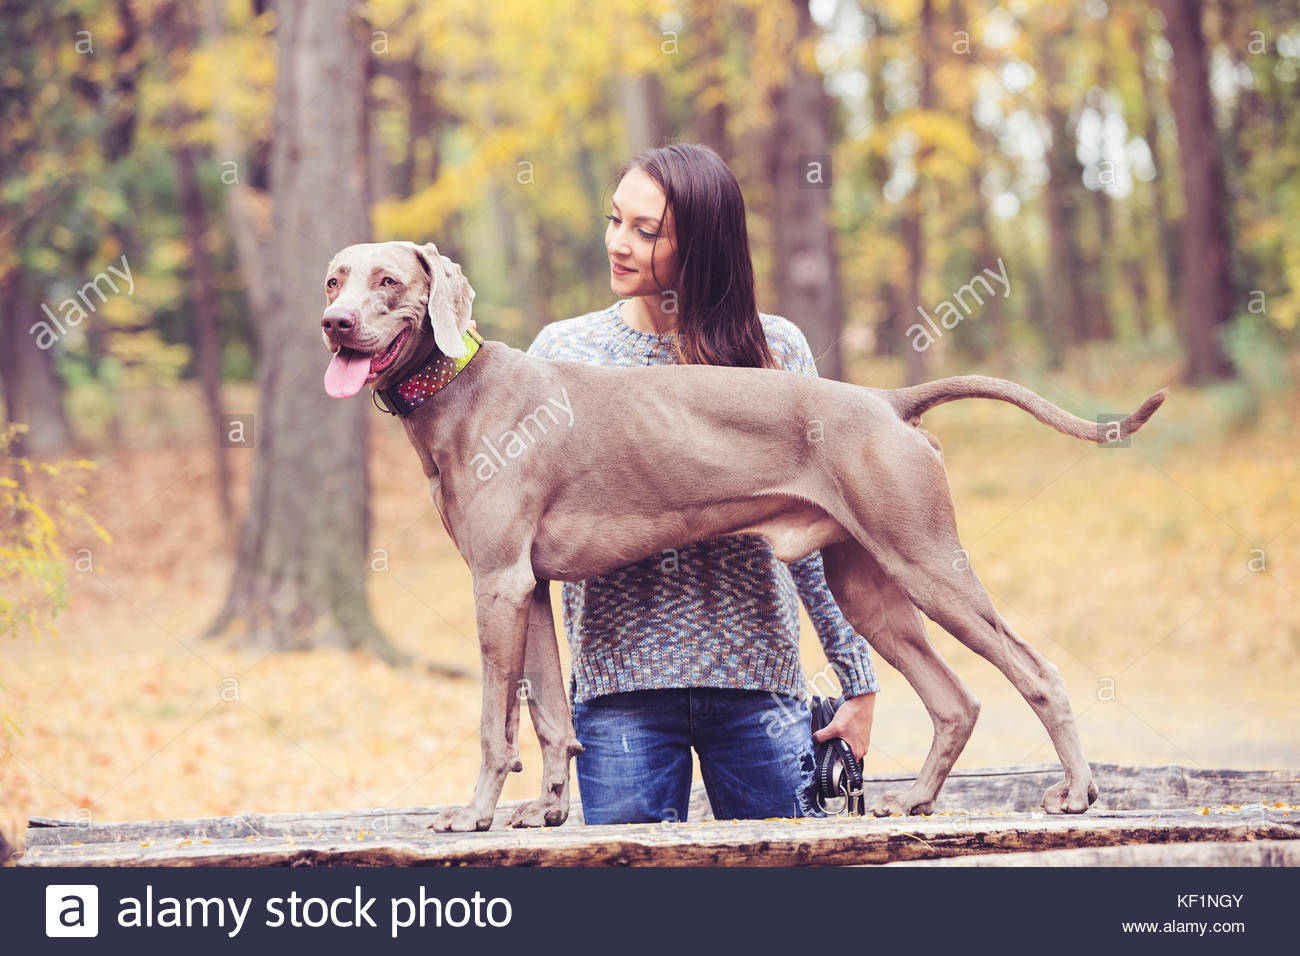 Girl with a dog in the park - Stock Image